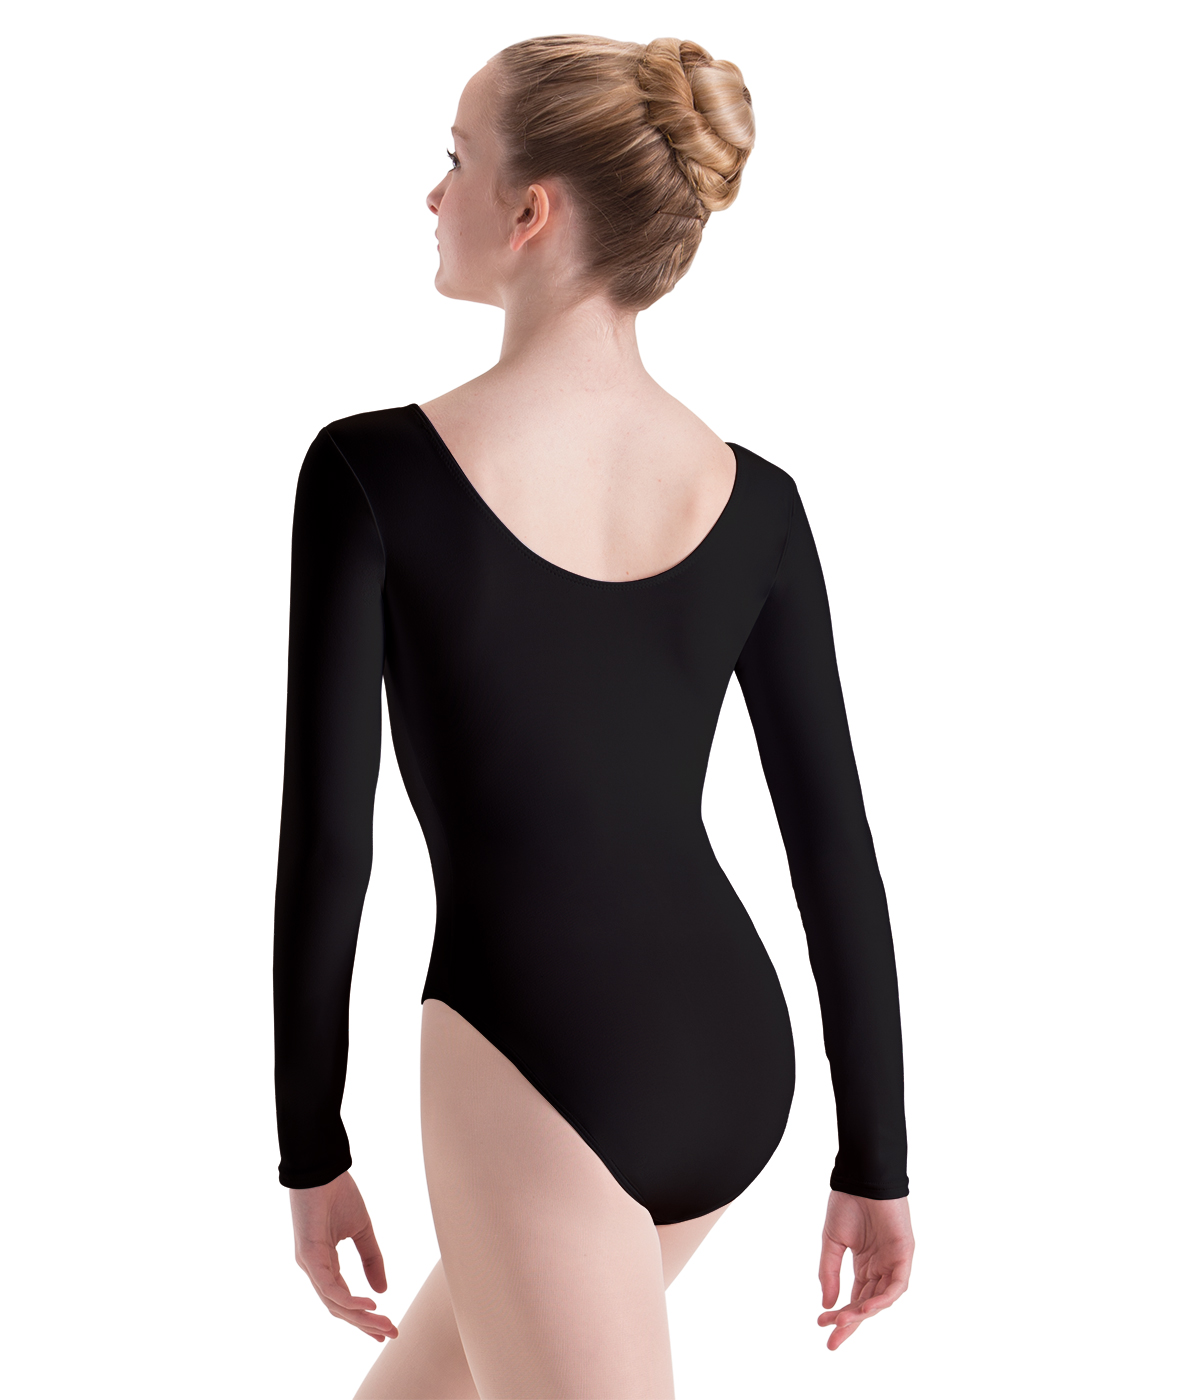 d893581b3c8fc Childrens Long Sleeve Leotard by Motionwear